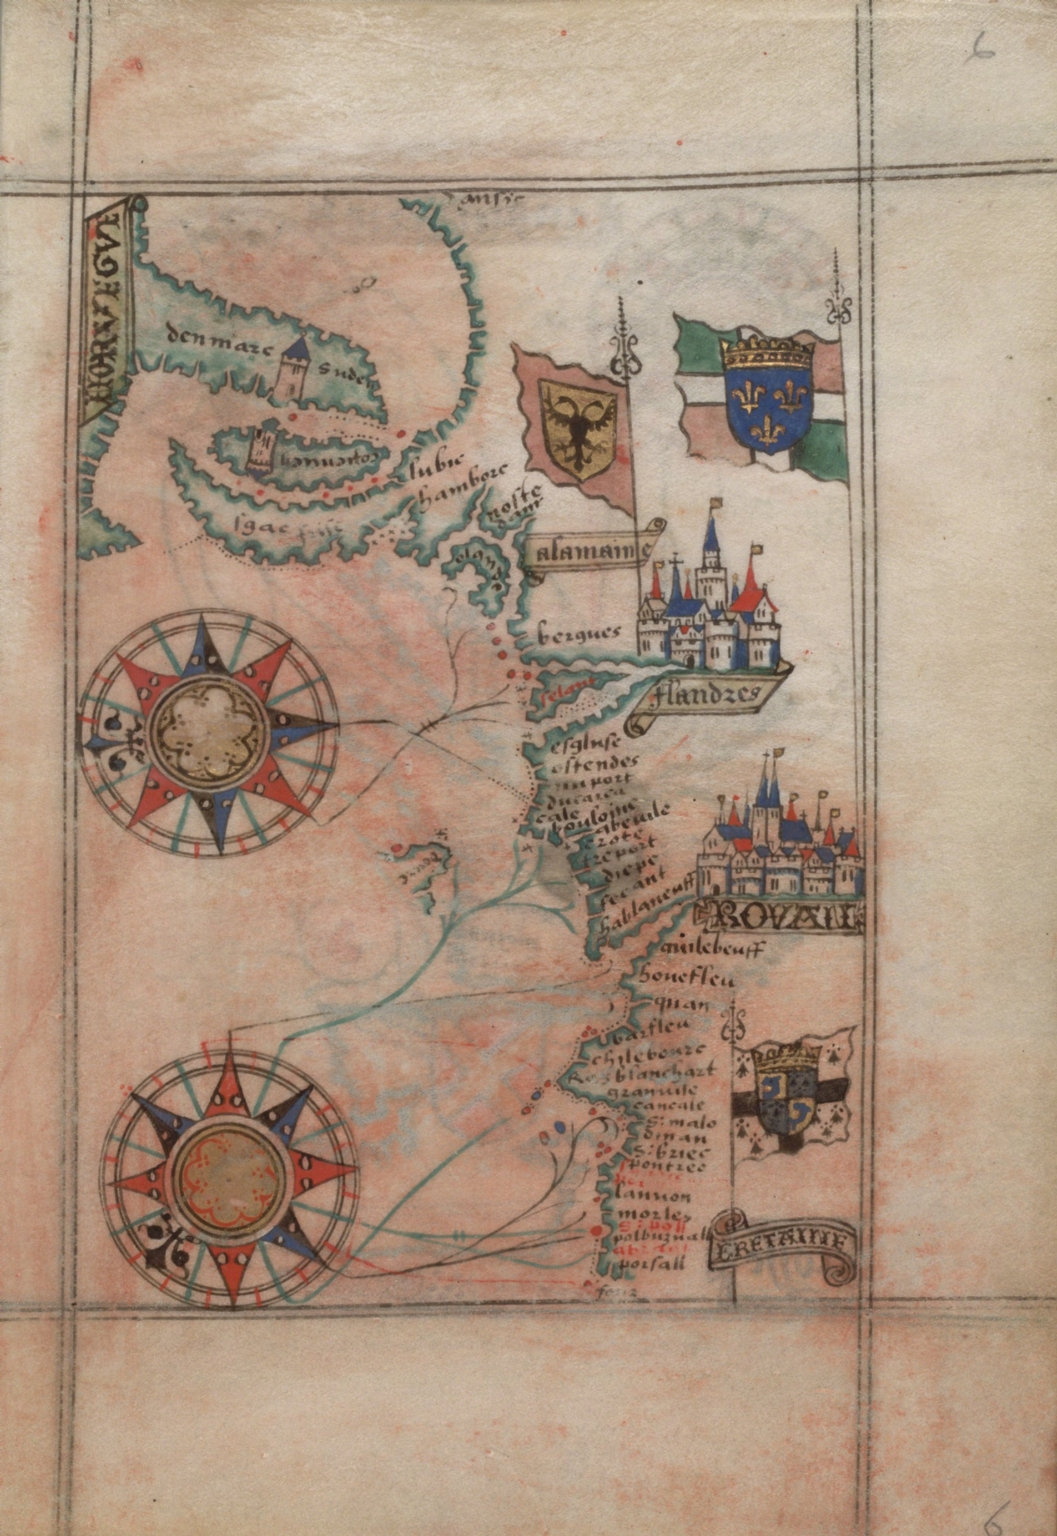 Chart of north coast of France, Flanders, Germany and Denmark